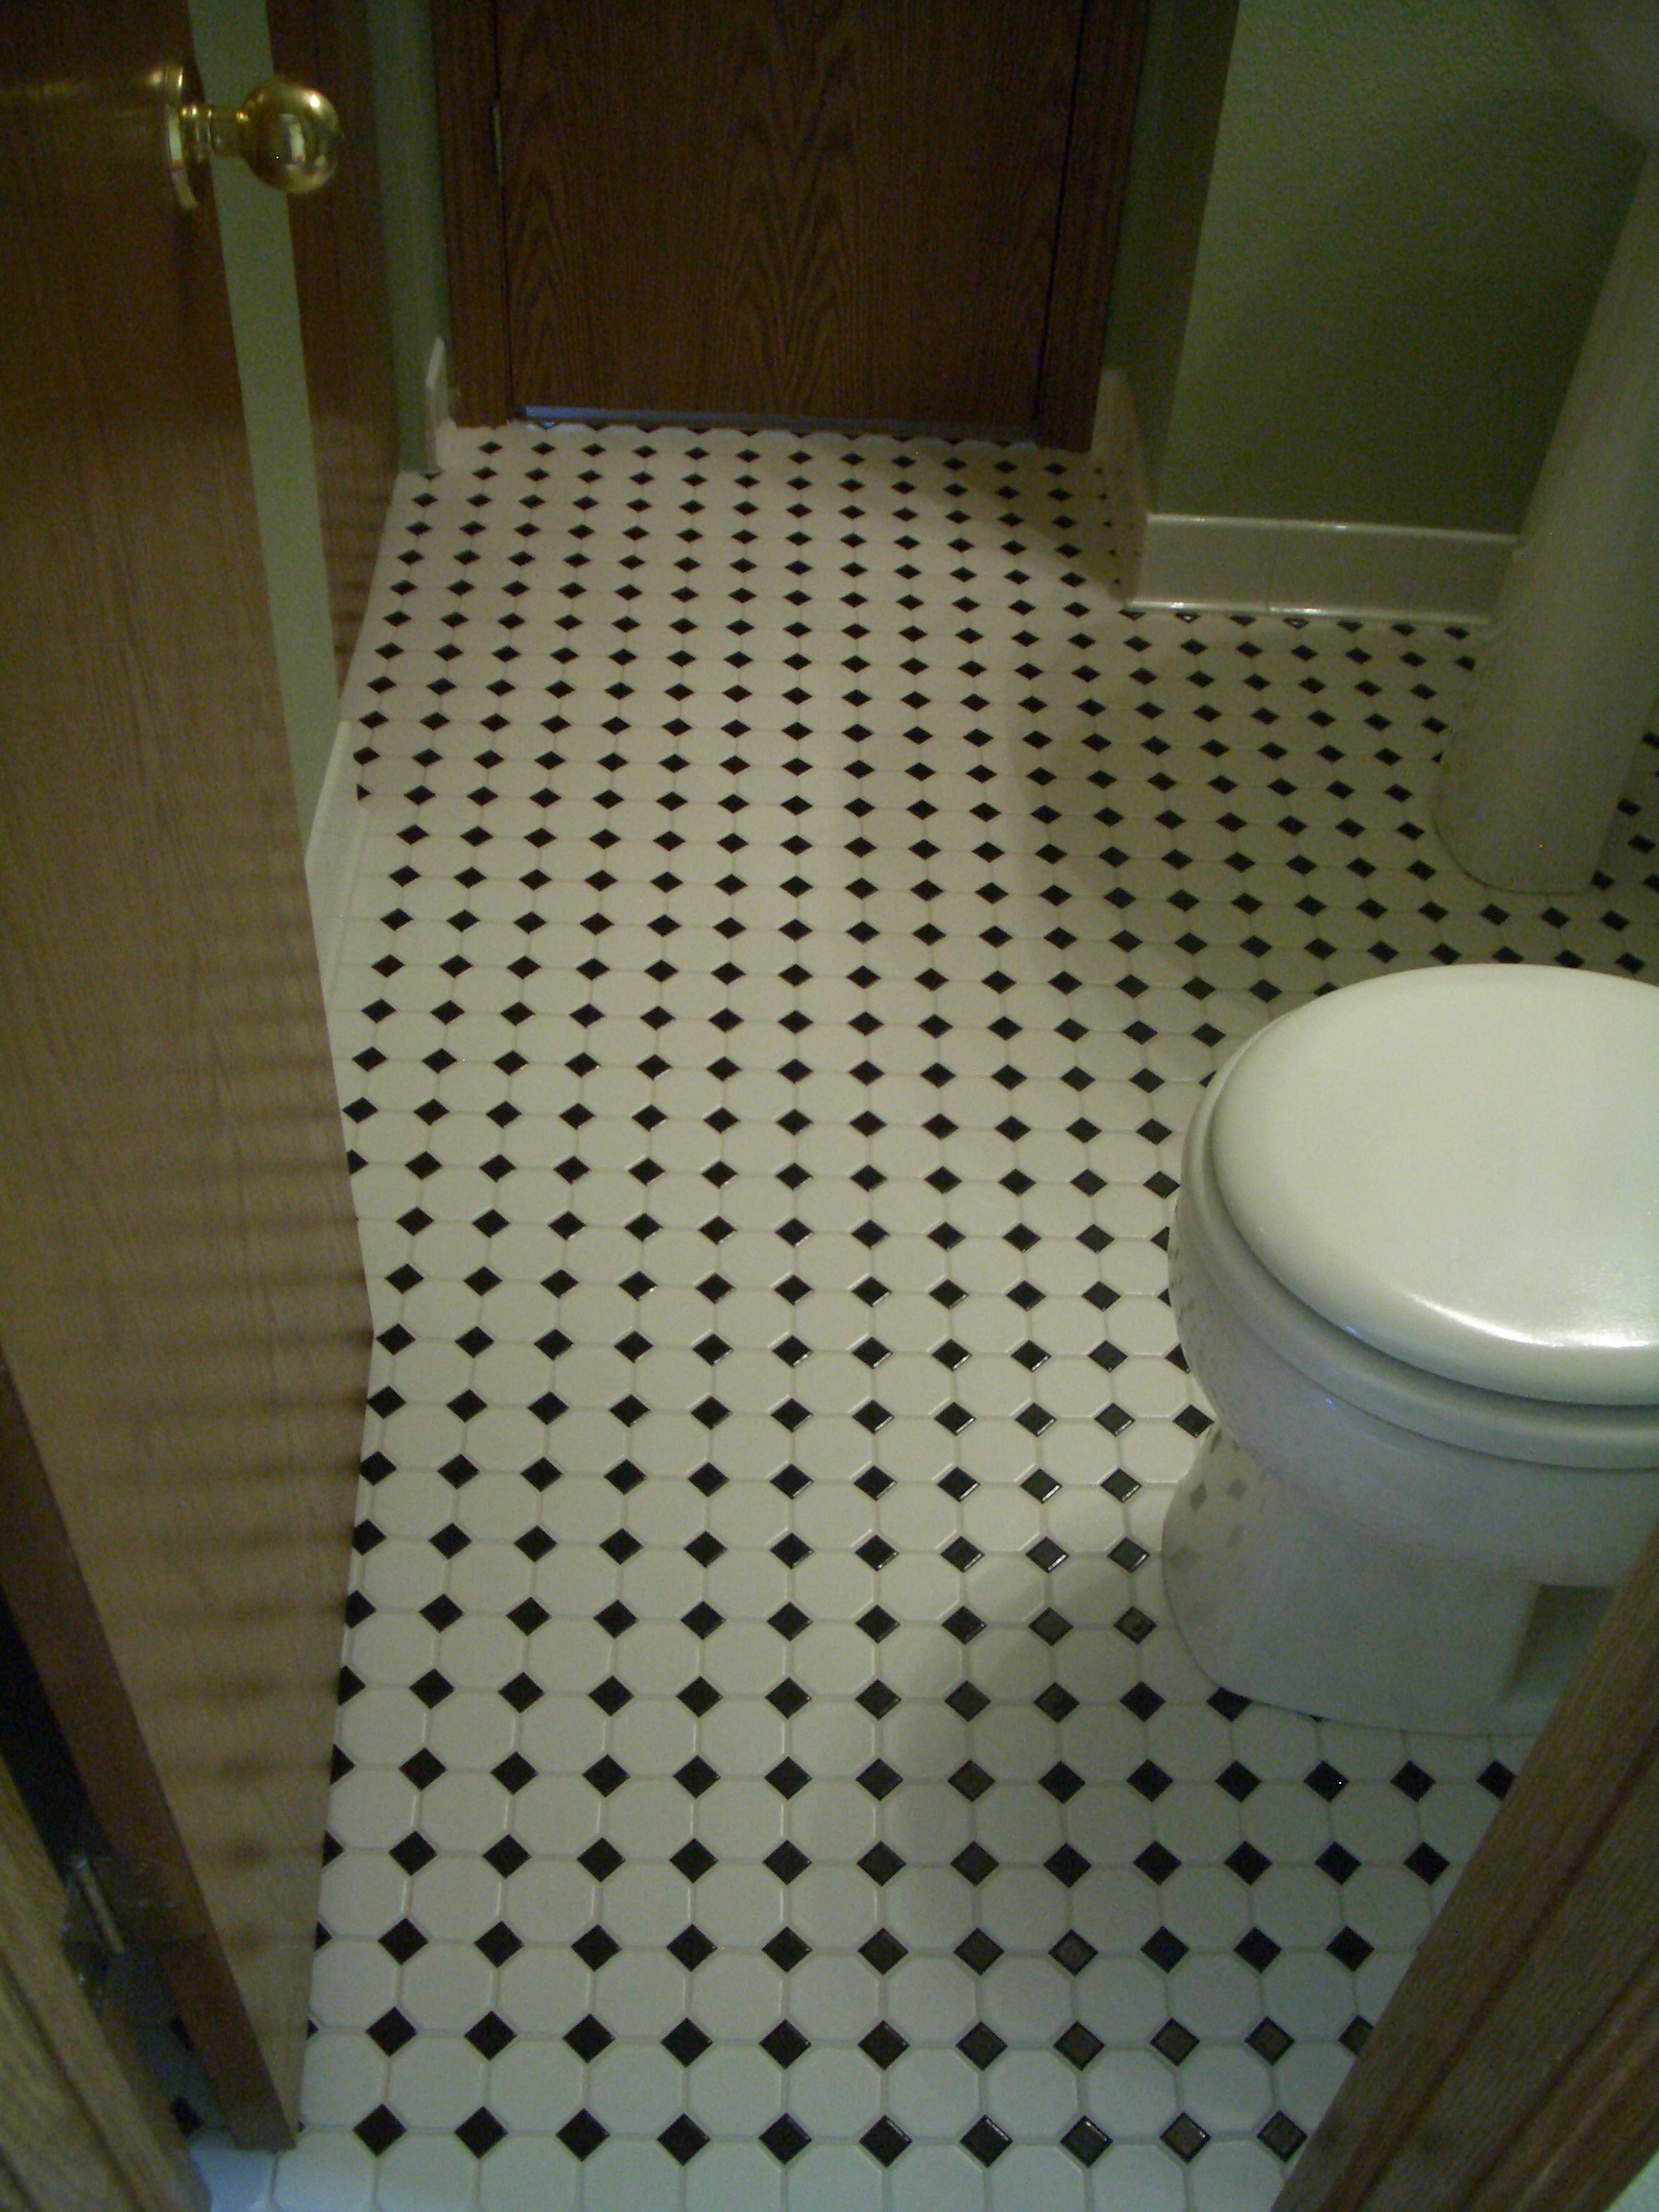 Octagonal mosaic tile floors with black dot in northern colorado octagonal mosaic tile floor installation with black dot in northern colorado dailygadgetfo Gallery